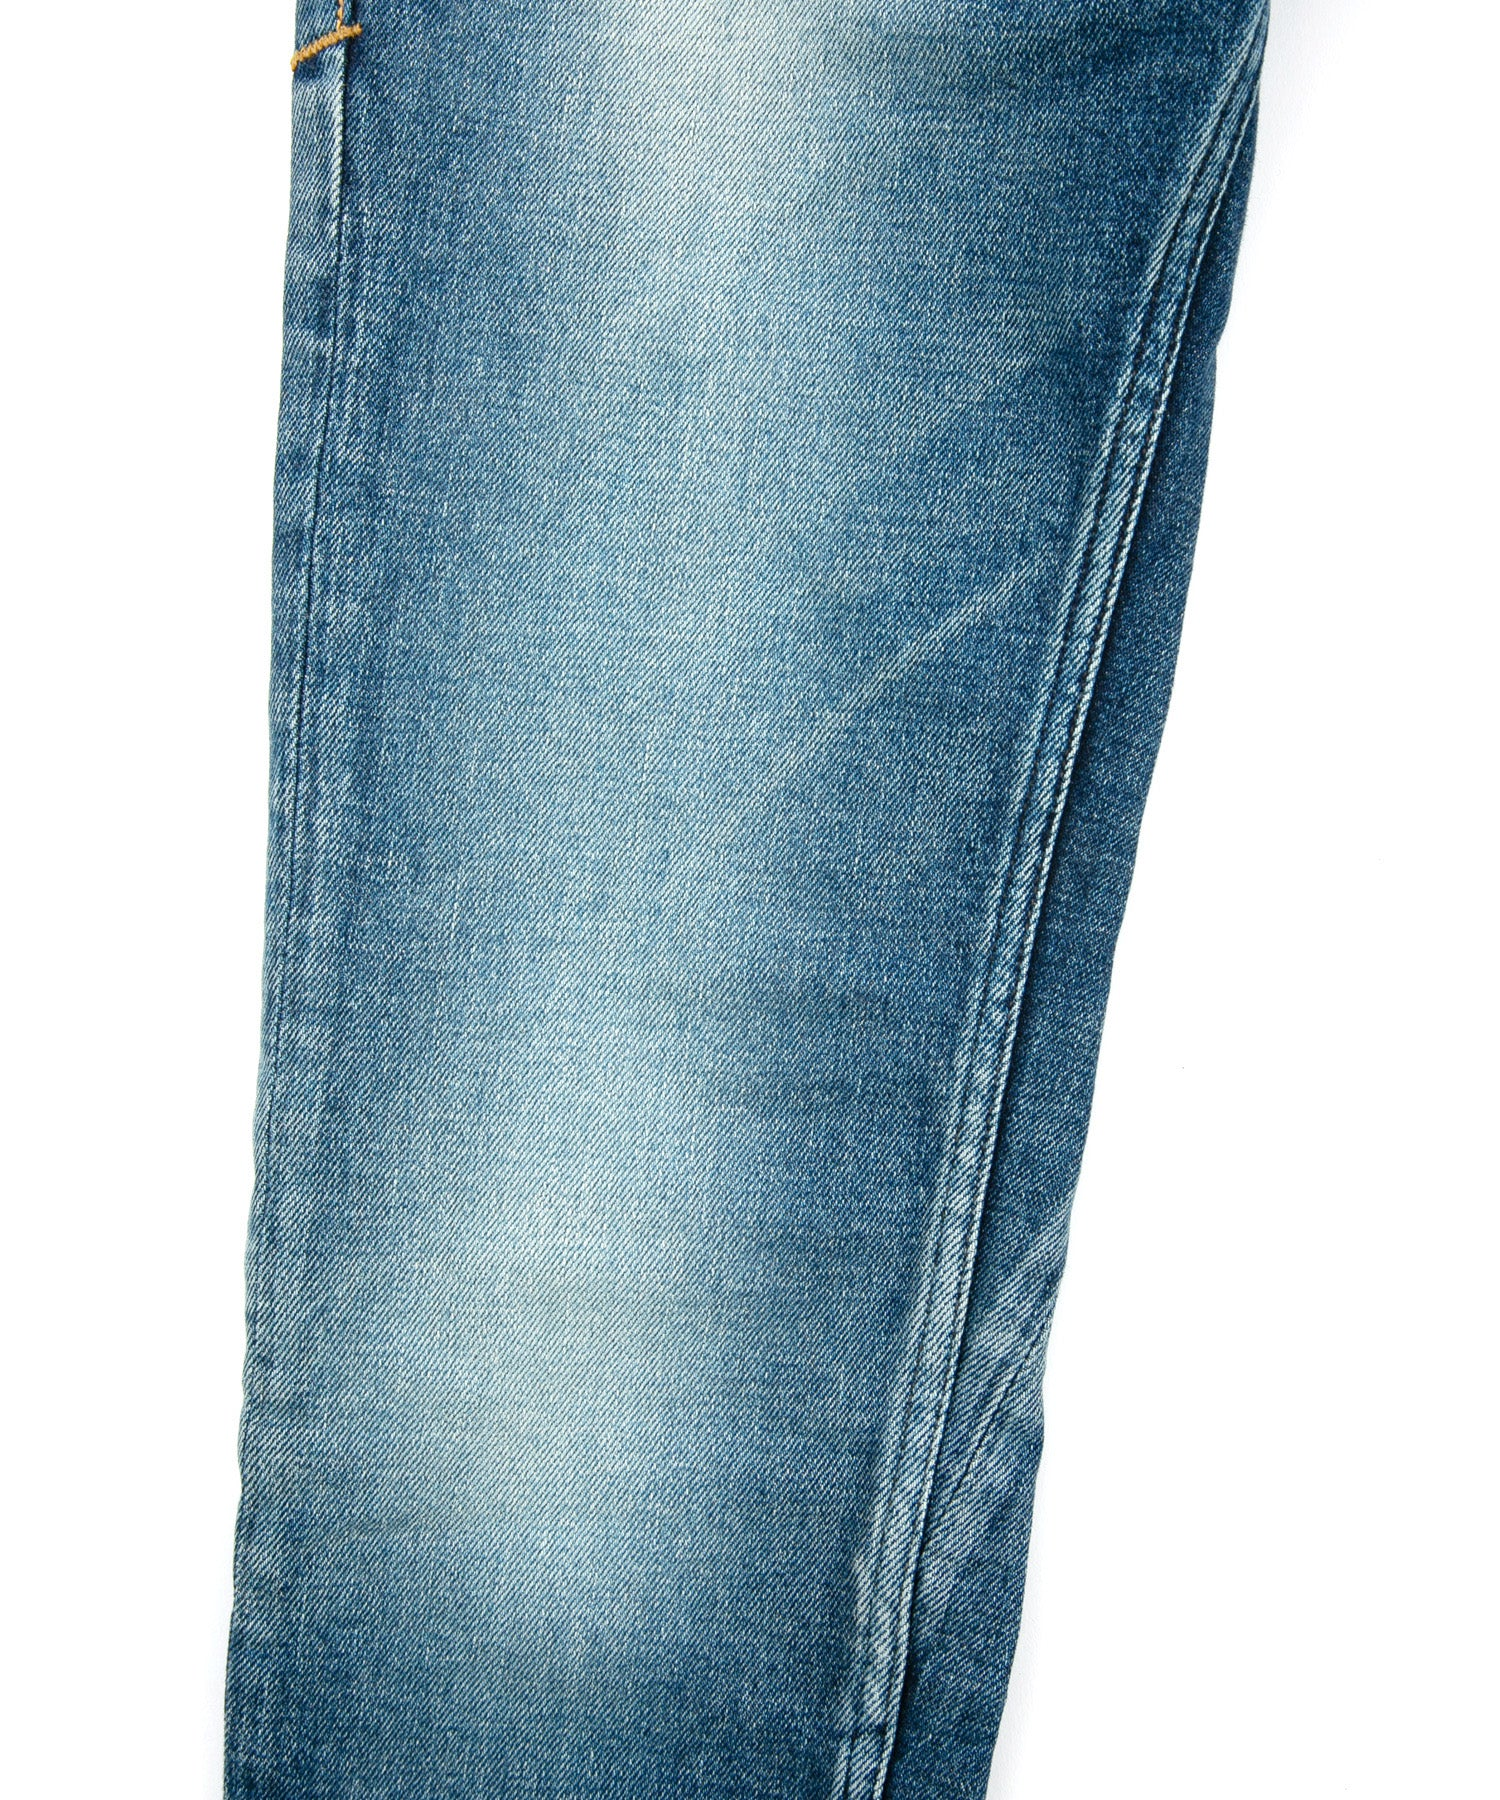 Load image into Gallery viewer, 12.5oz Organic Cotton Stretch Denim Skinny Jeans Used Processing / INDIGO